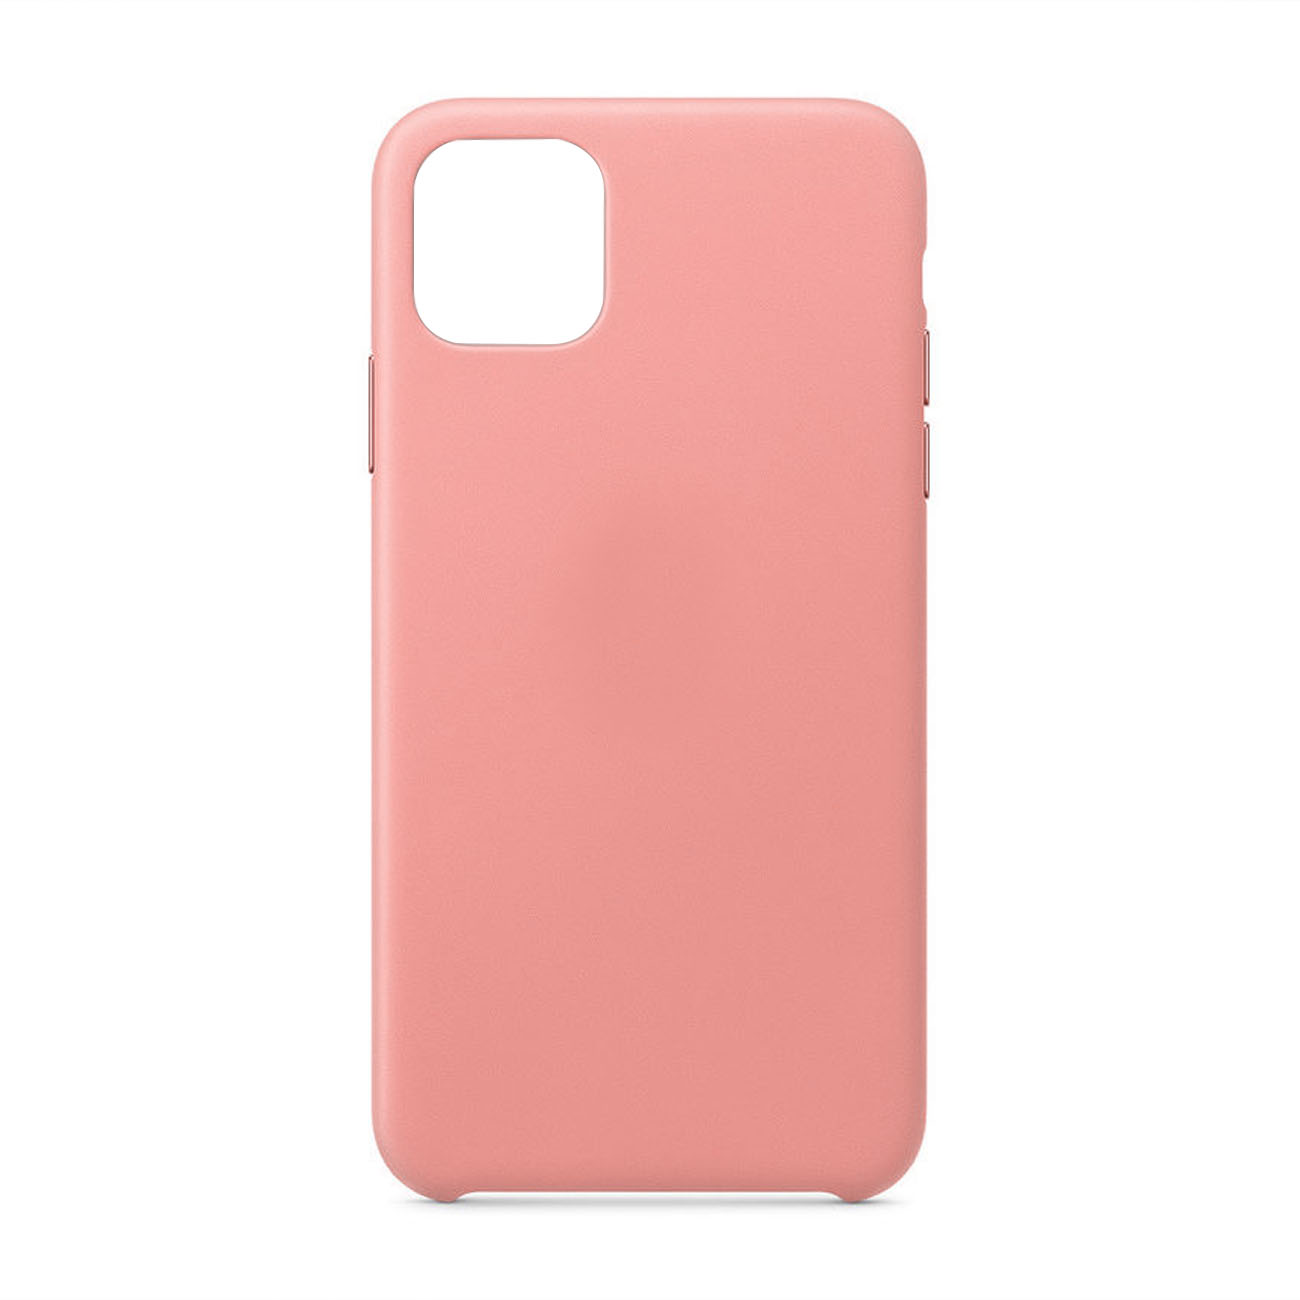 Reiko Apple iPhone 11 Gummy Cases In Pink